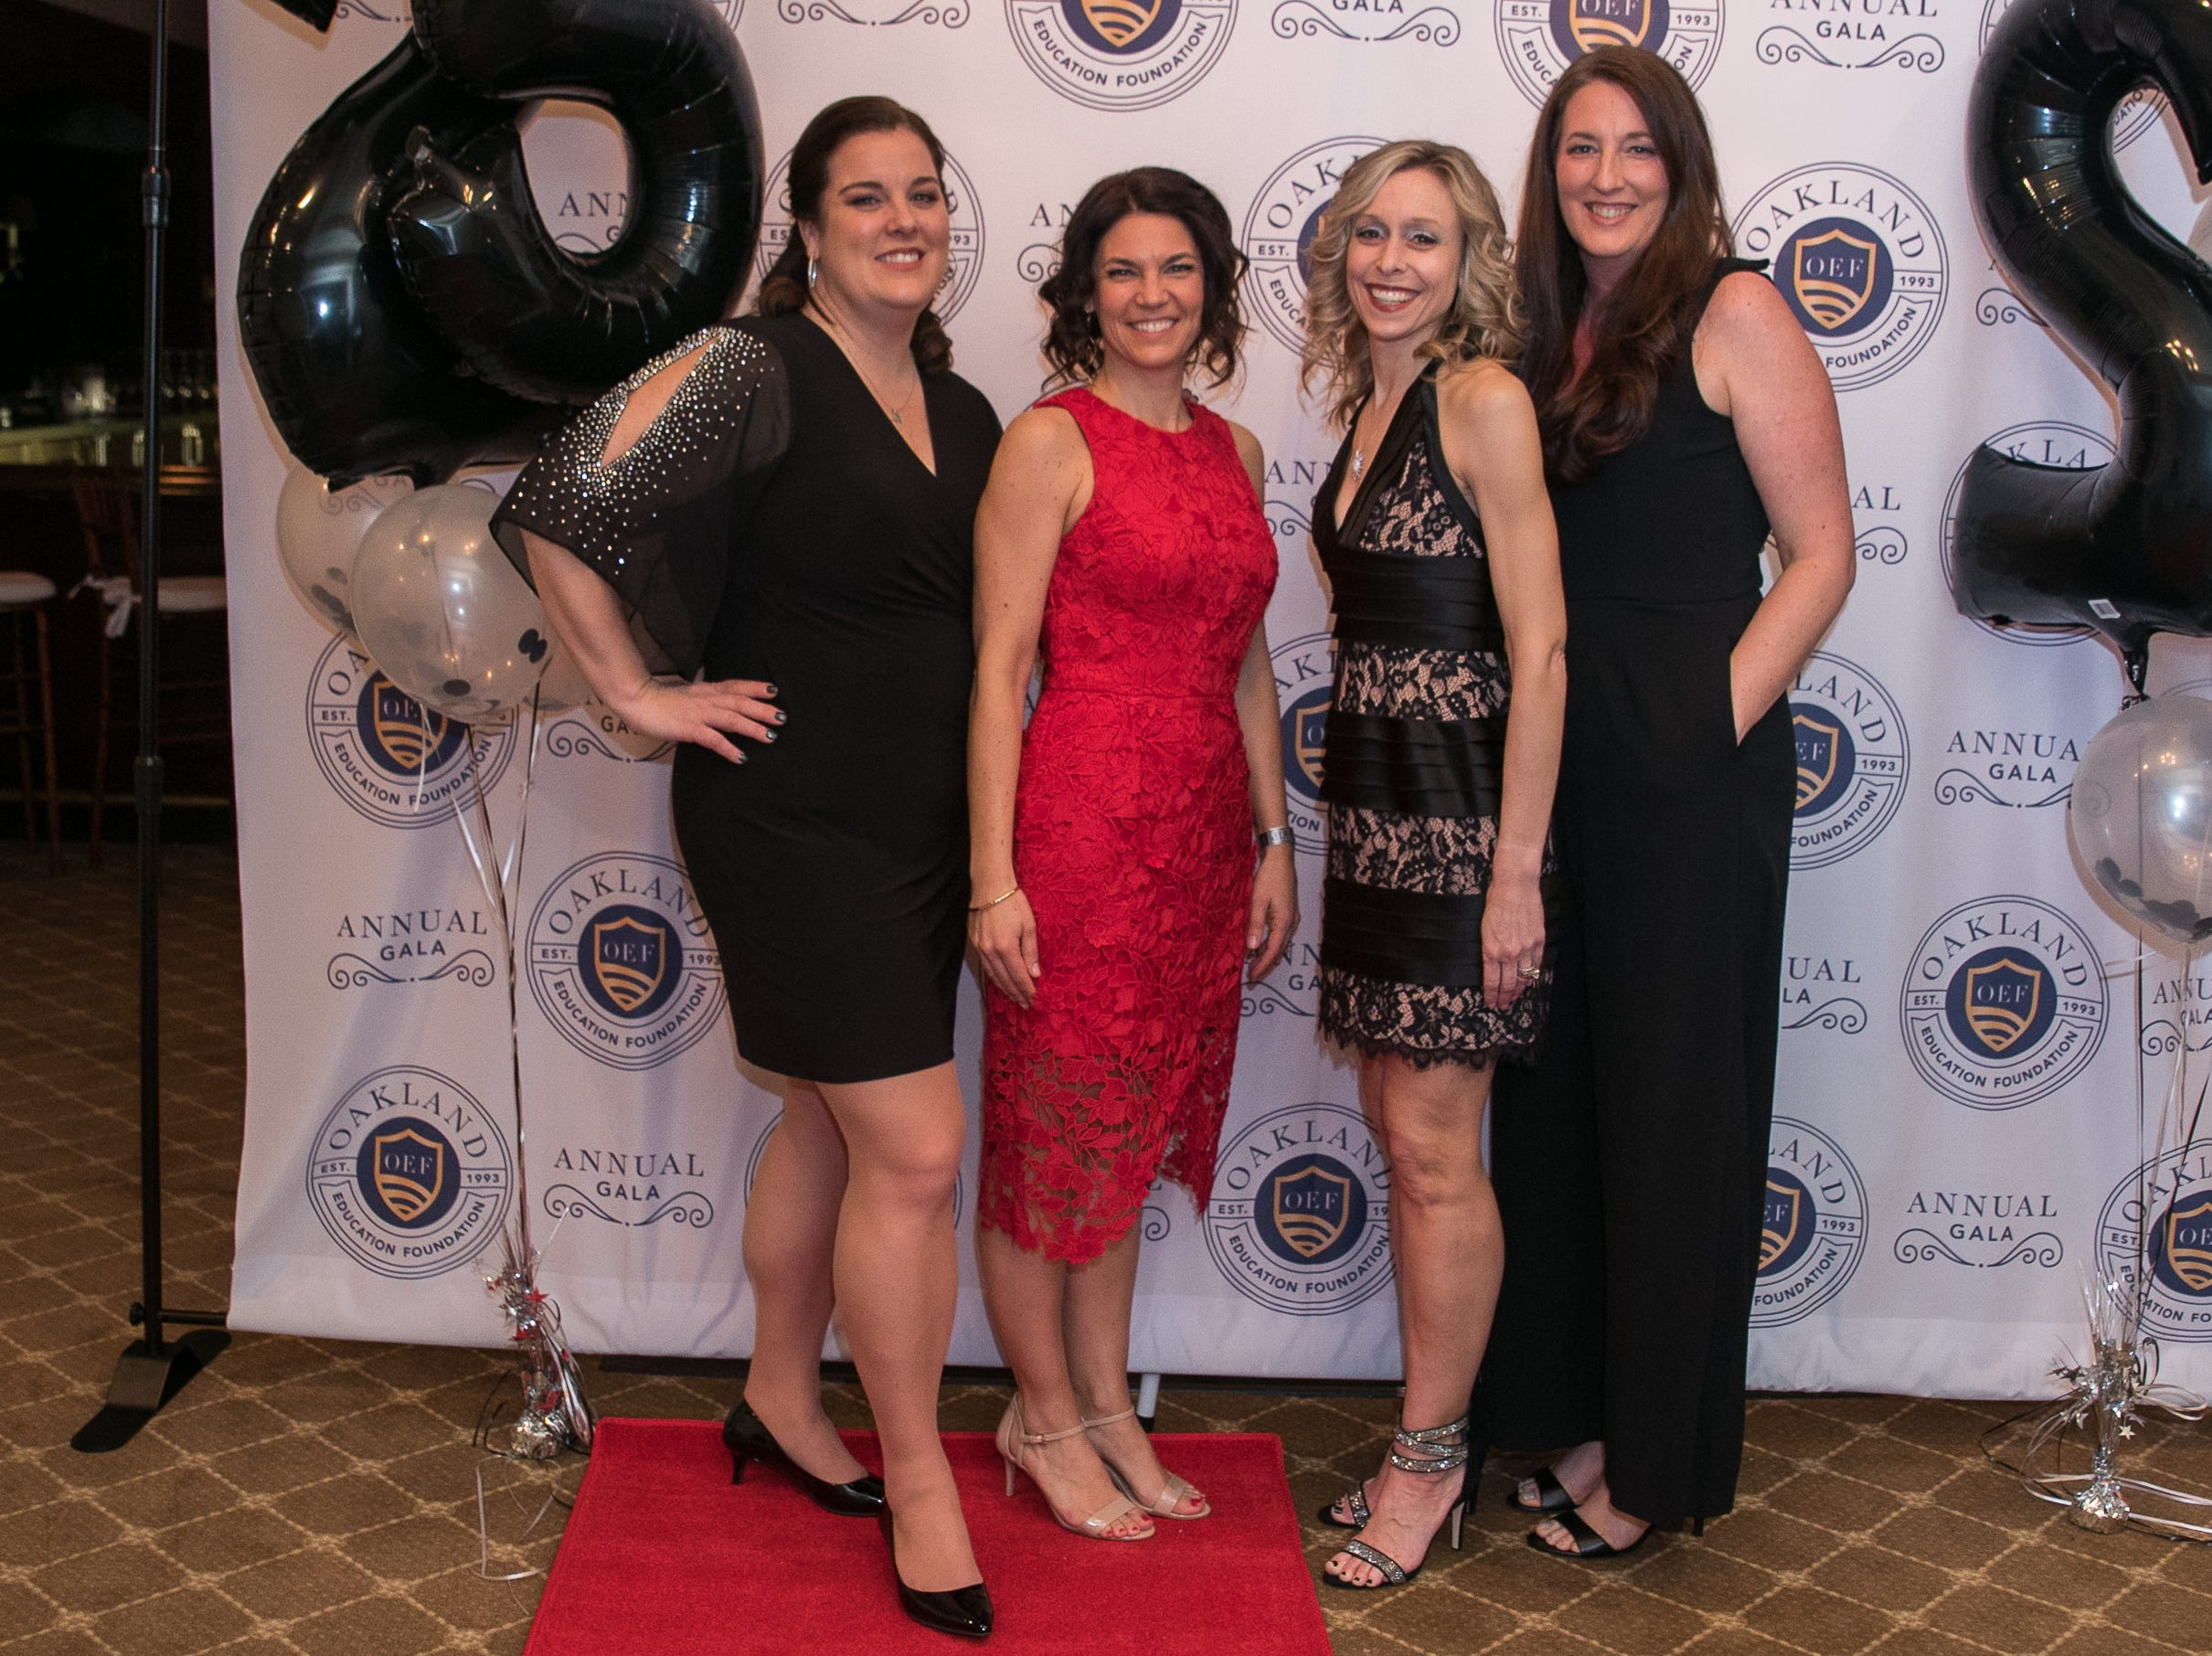 Melissa, Jen, Lara, Kerry. The Oakland Education Foundation held their 25th Anniversary Casino Night Gala at Preakness Hills Country Club in Wayne. 03/16/2019